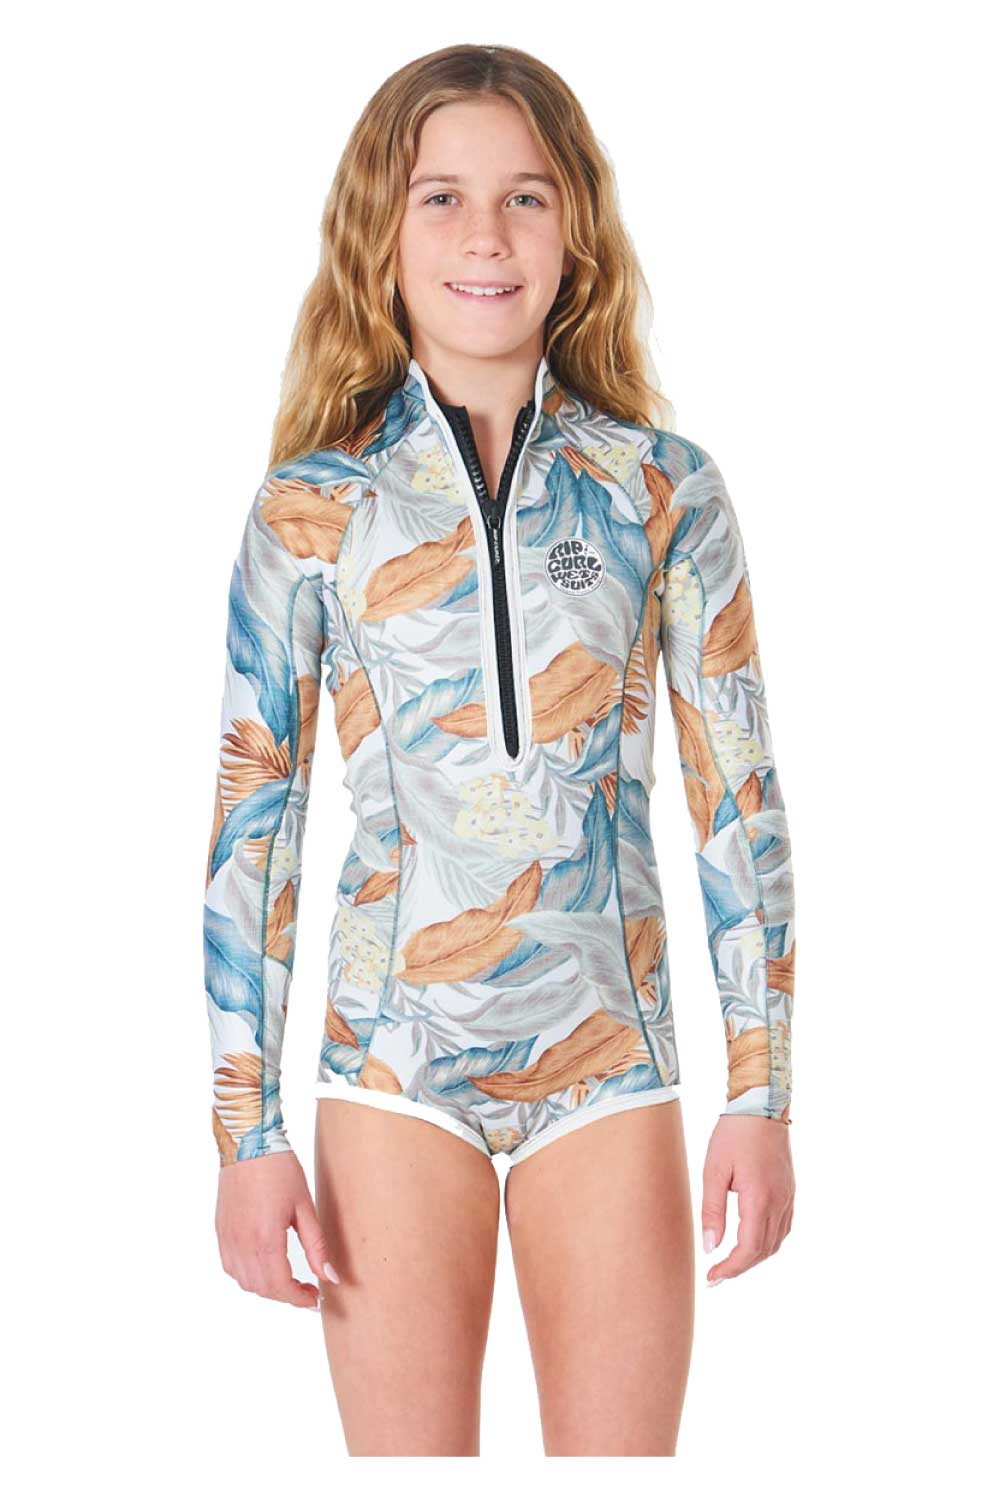 Rip Curl Junior G-Bomb Long Sleeve 1mm Spring Suit Girls (8 - 16 years)